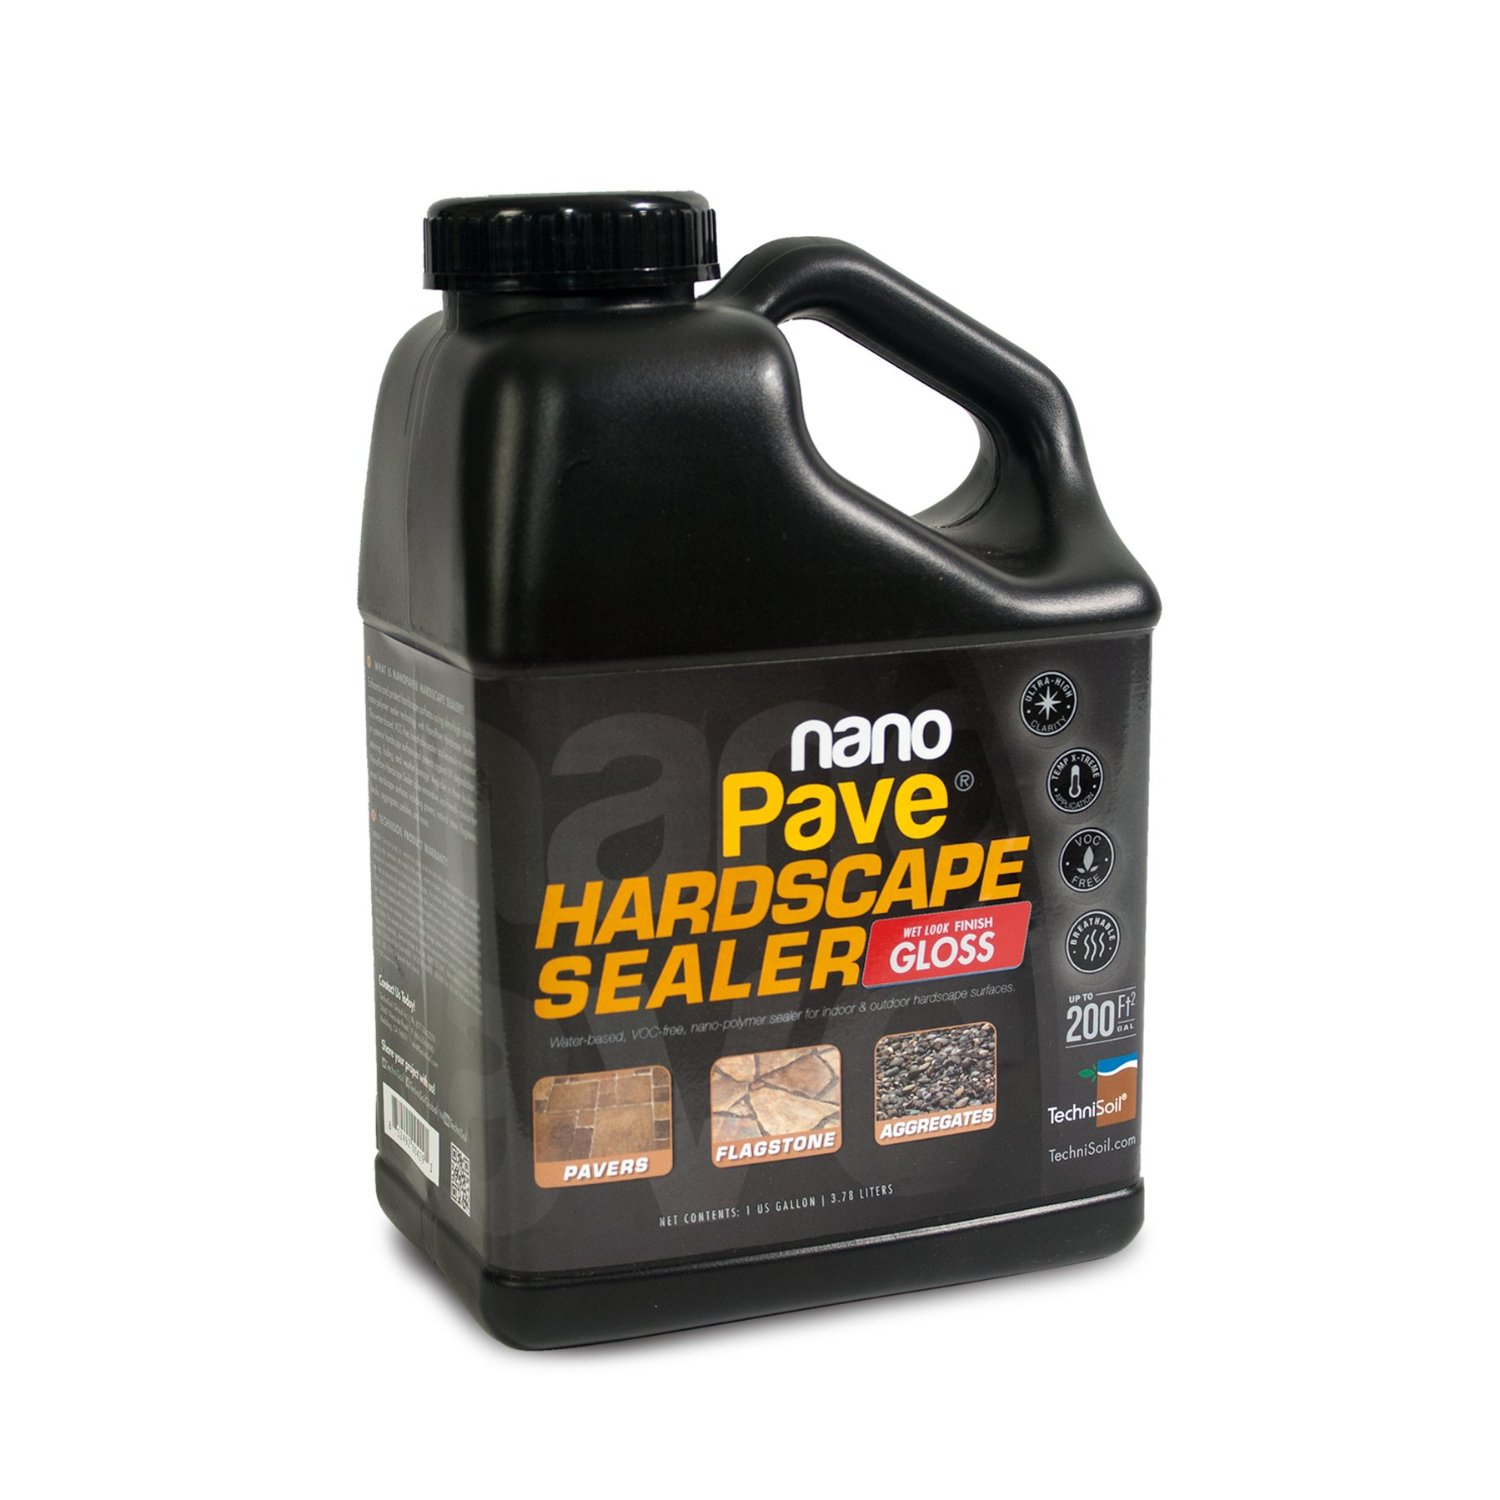 <br><strong>GLOSS HARDSCAPE SEALER</strong><br>